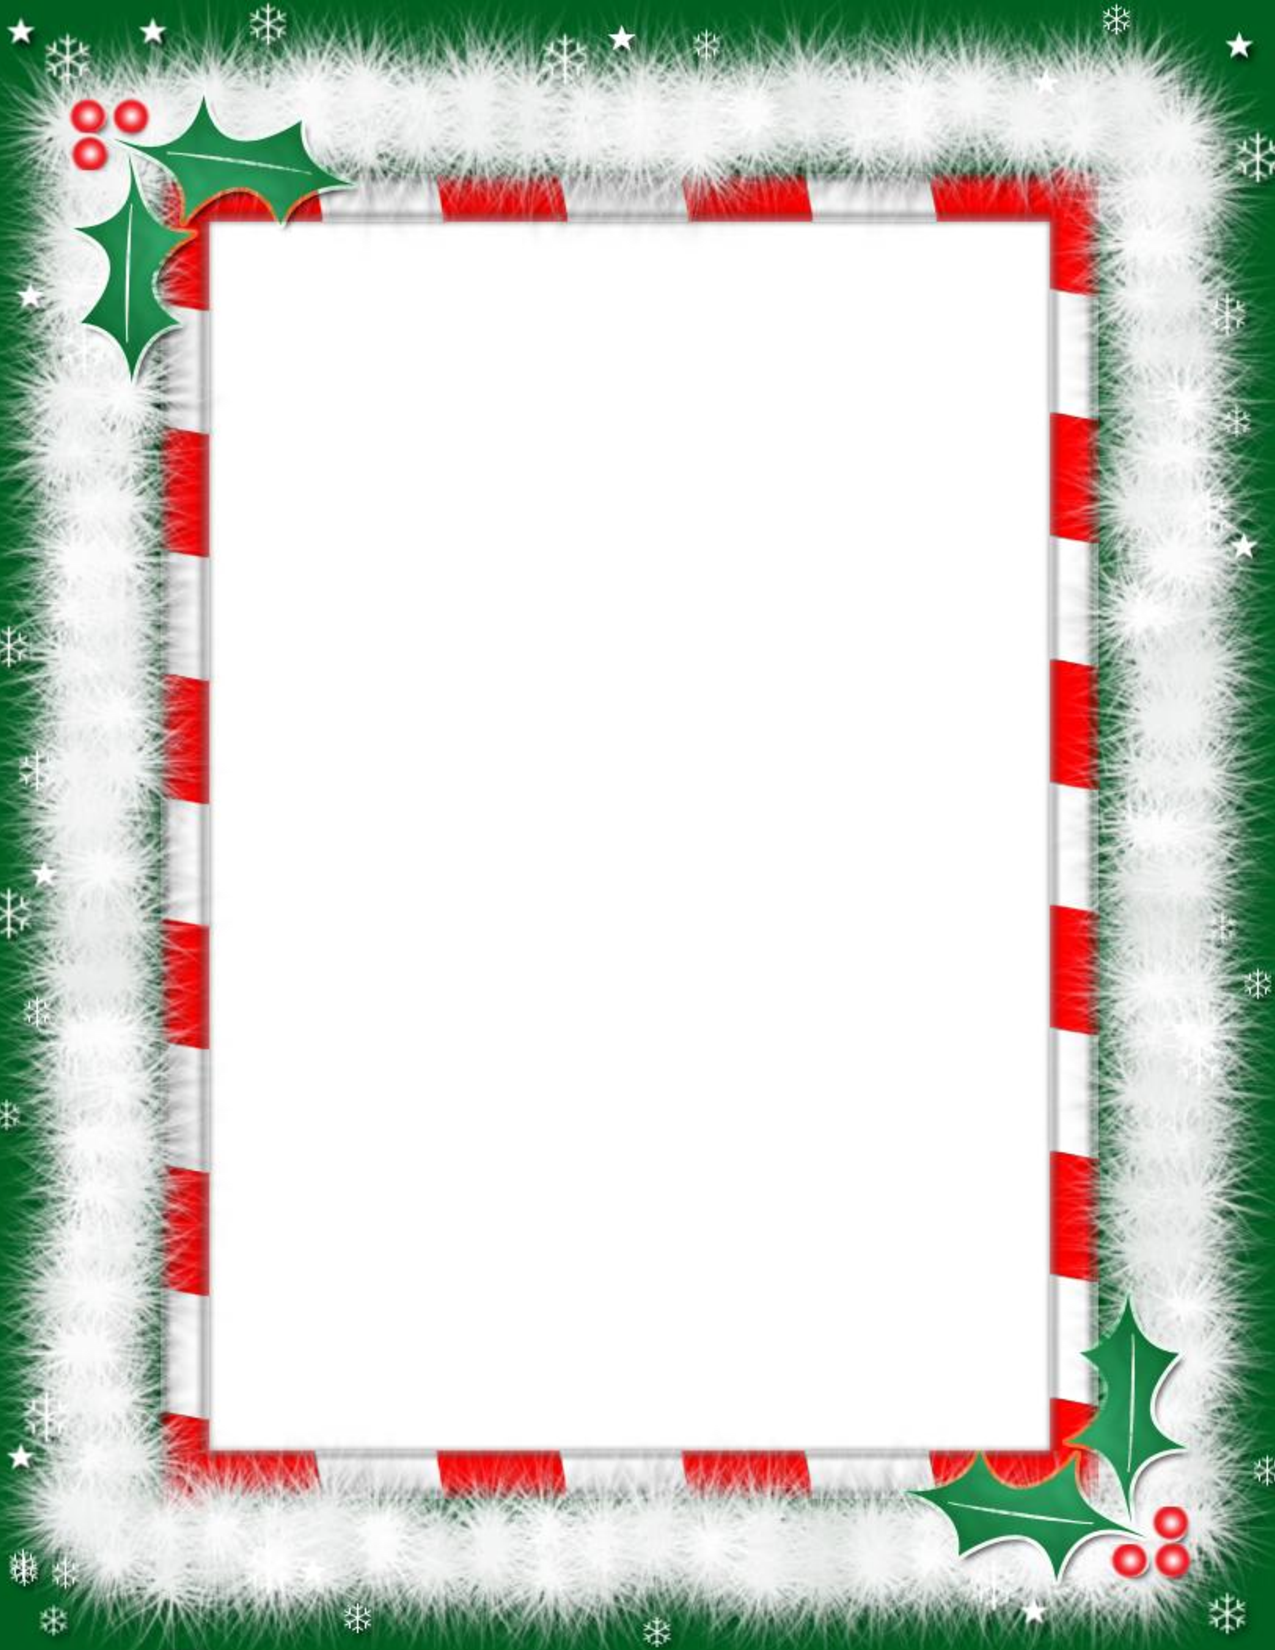 Free Christmas Letter Templates Microsoft Word   Google Search  Christmas Letter Template Word Free